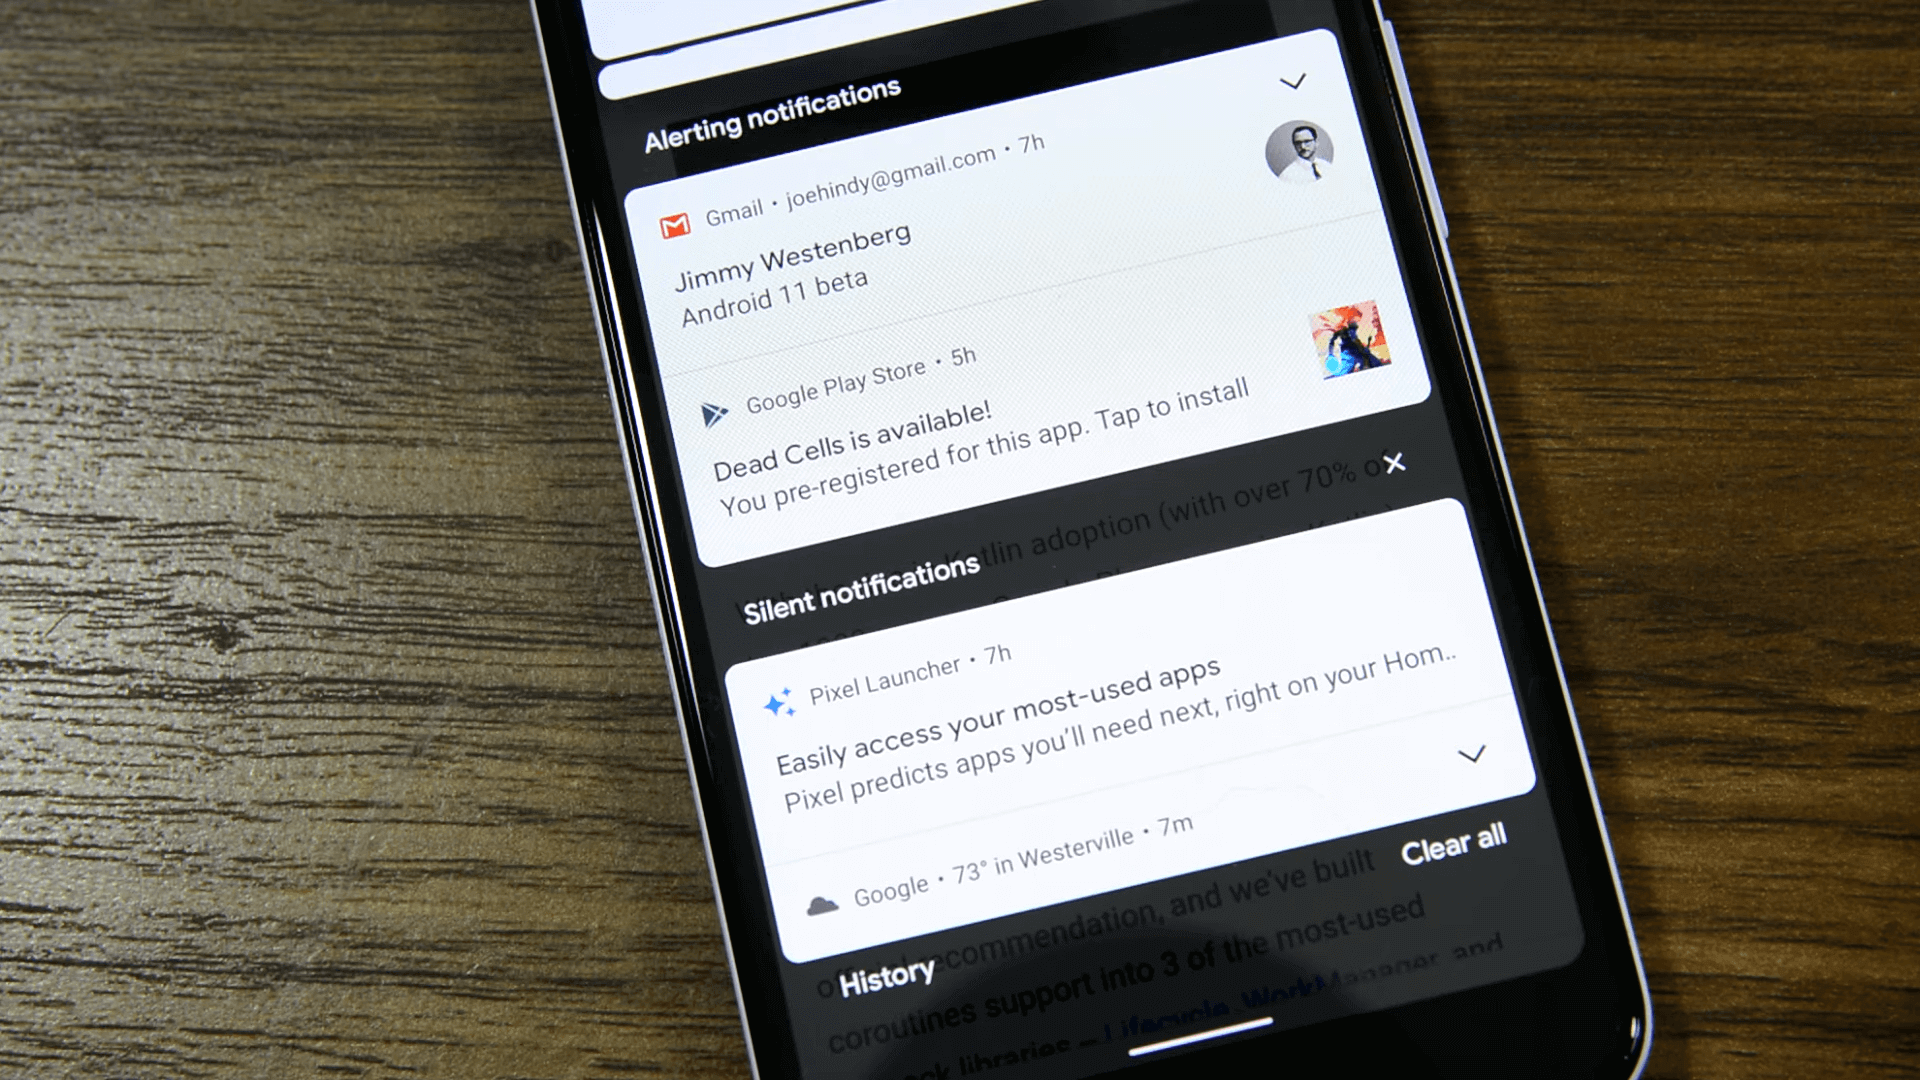 Android 11s features organised notification